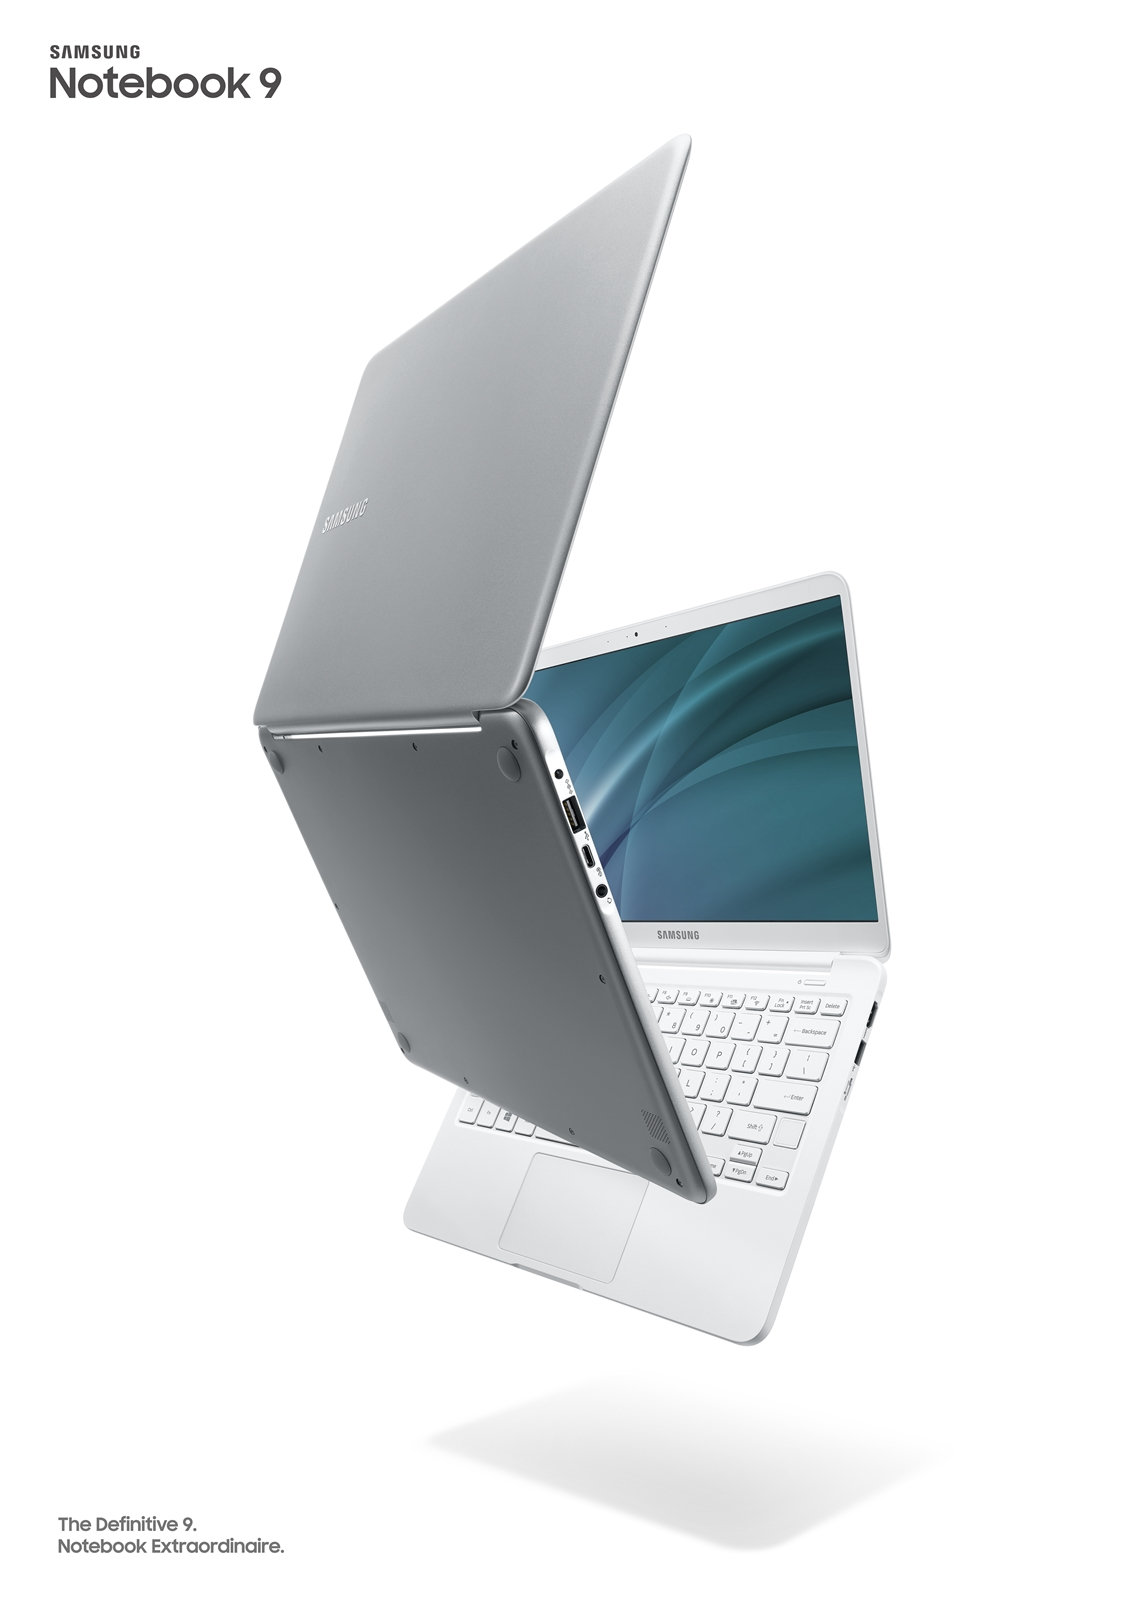 Notebook9_Group_15Silver%2B13.3White_OOH_161127.jpg